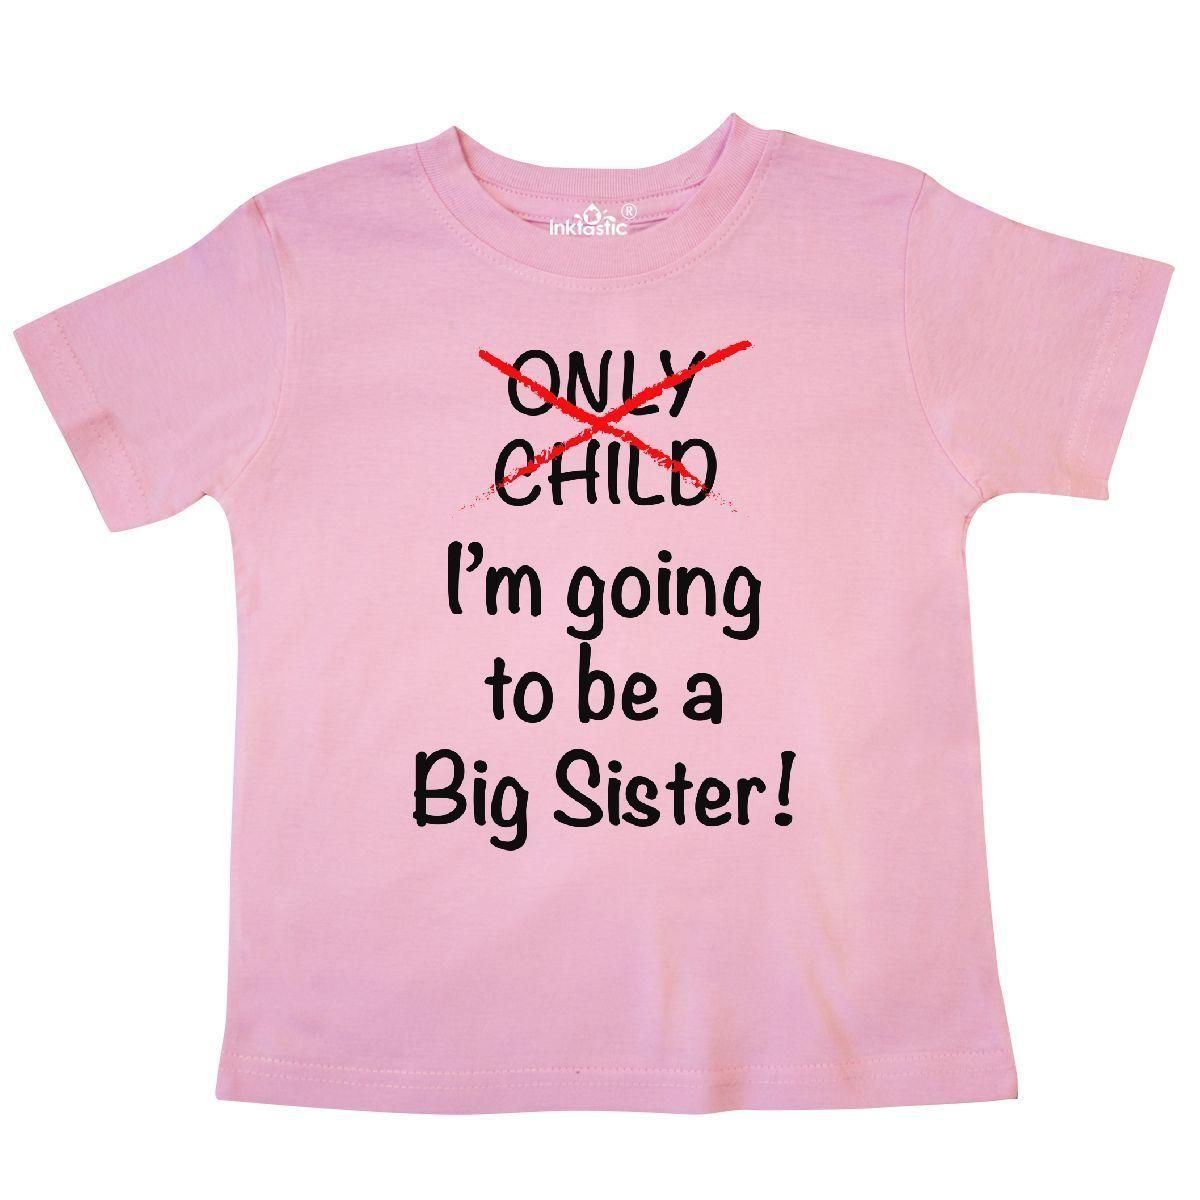 c894d59c Inktastic I'm Going To Be A Big Sister! Toddler T-Shirt Sister Only Child  Cute Funny free shipping Unisex Casual tee gift